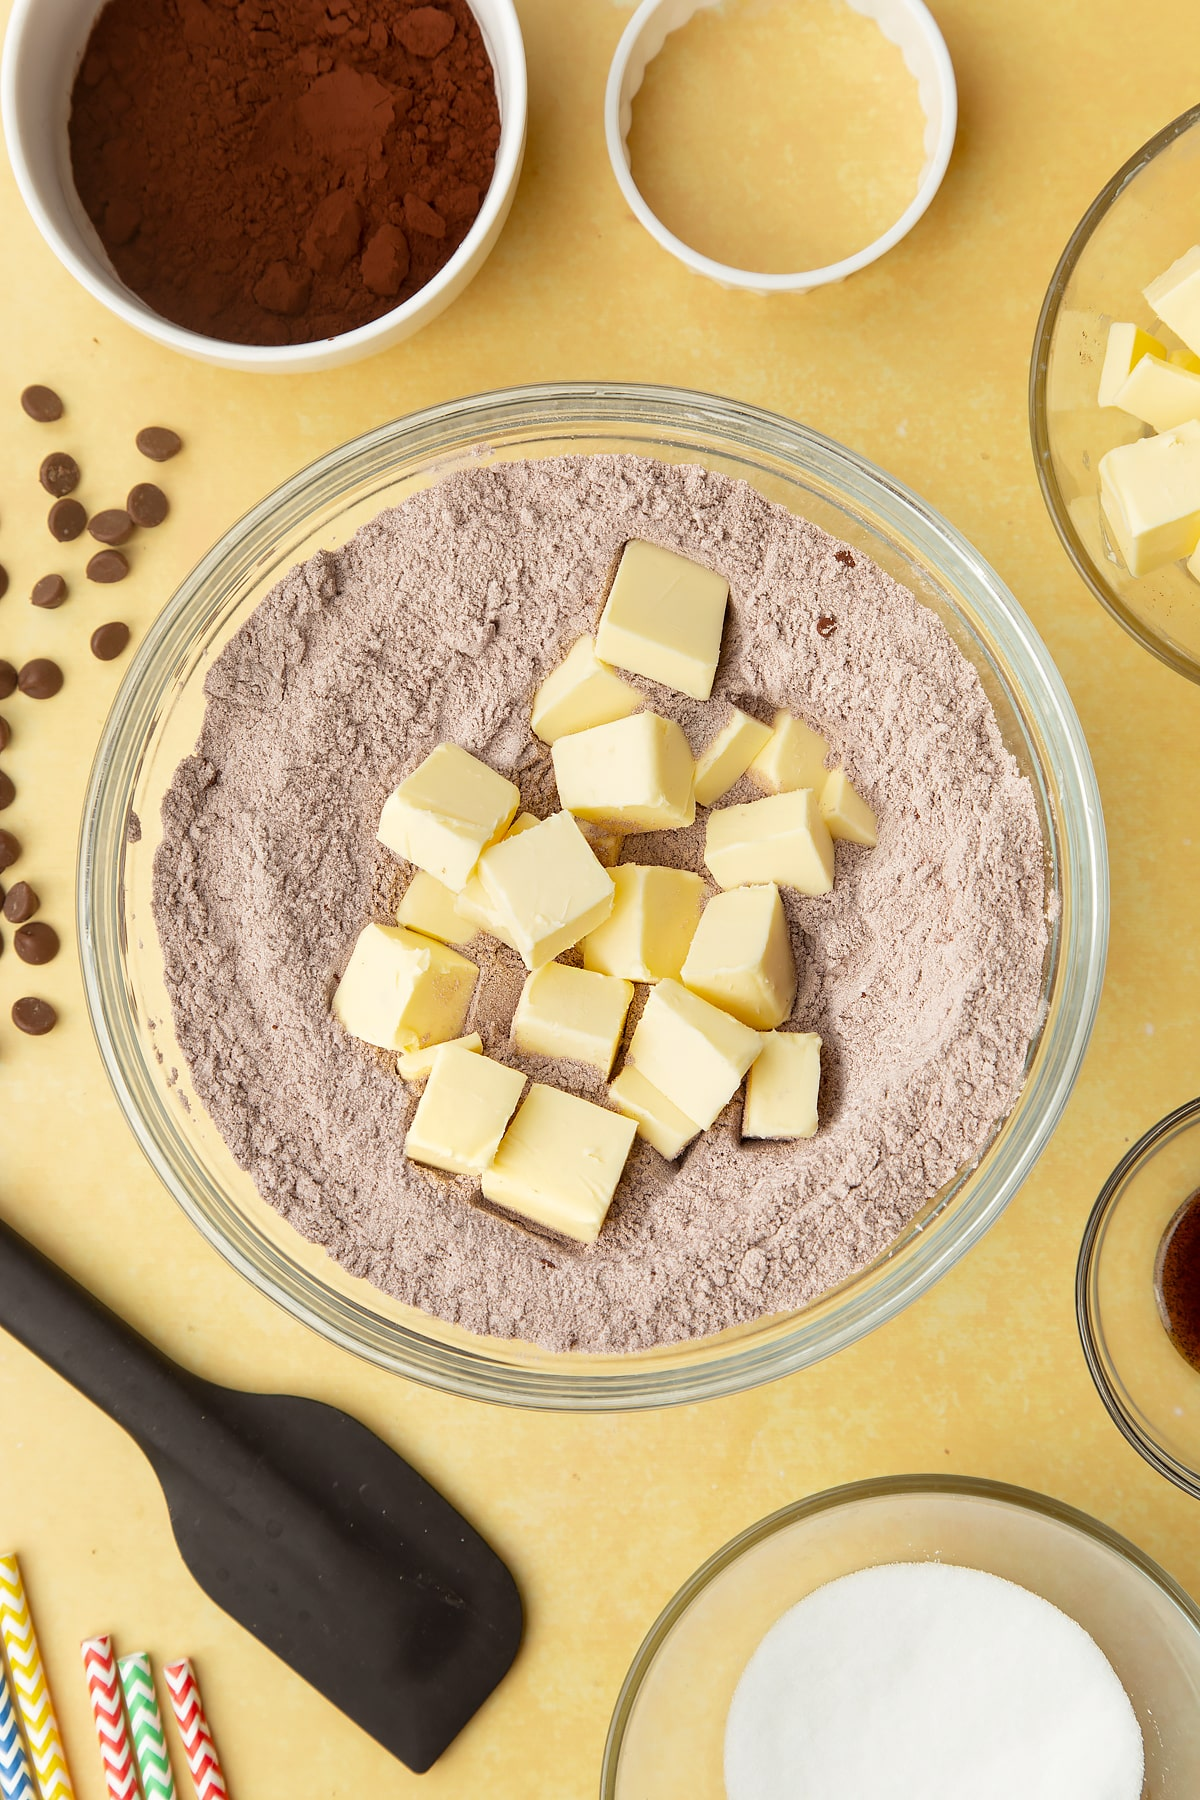 Cocoa, sugar, flour with cubed butter on top in a bowl. Ingredients to make Nutella sandwich cookies surround the bowl.